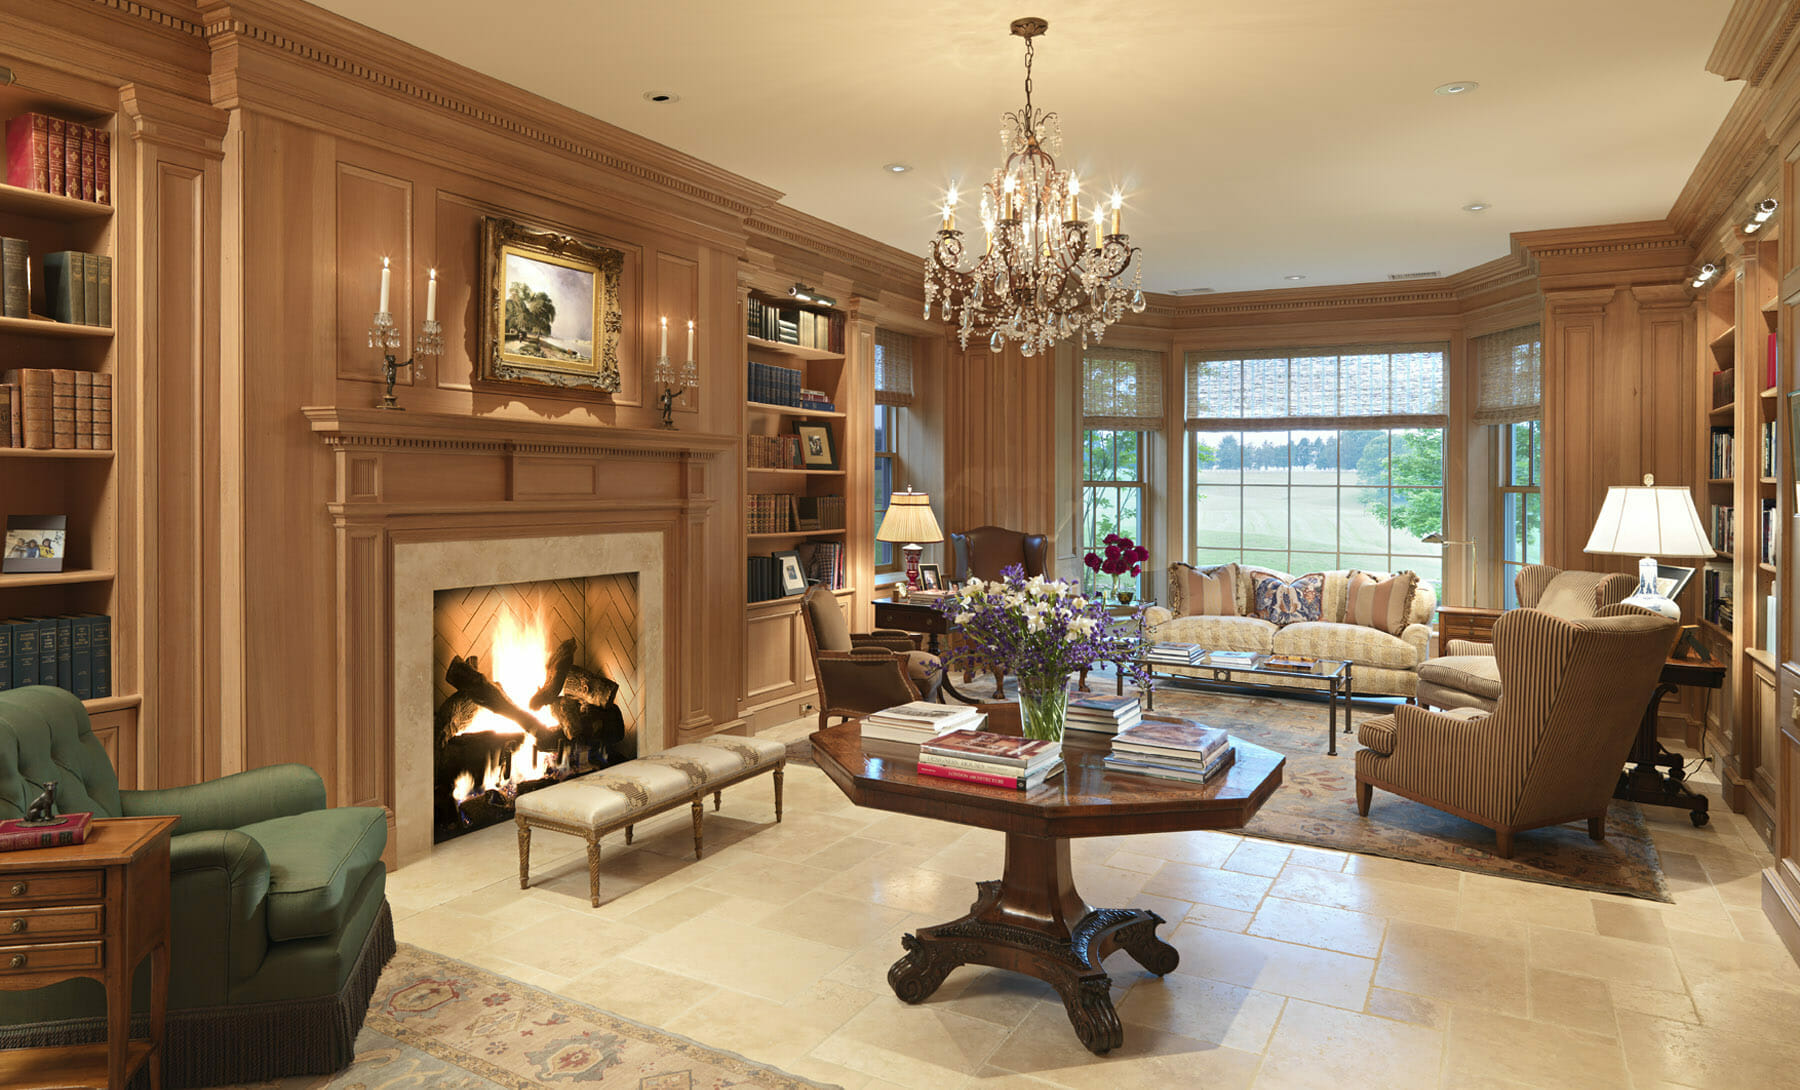 Gibson, Magerfield & Edenali specialize in interior and exterior historic home preservation in Albemarle County.